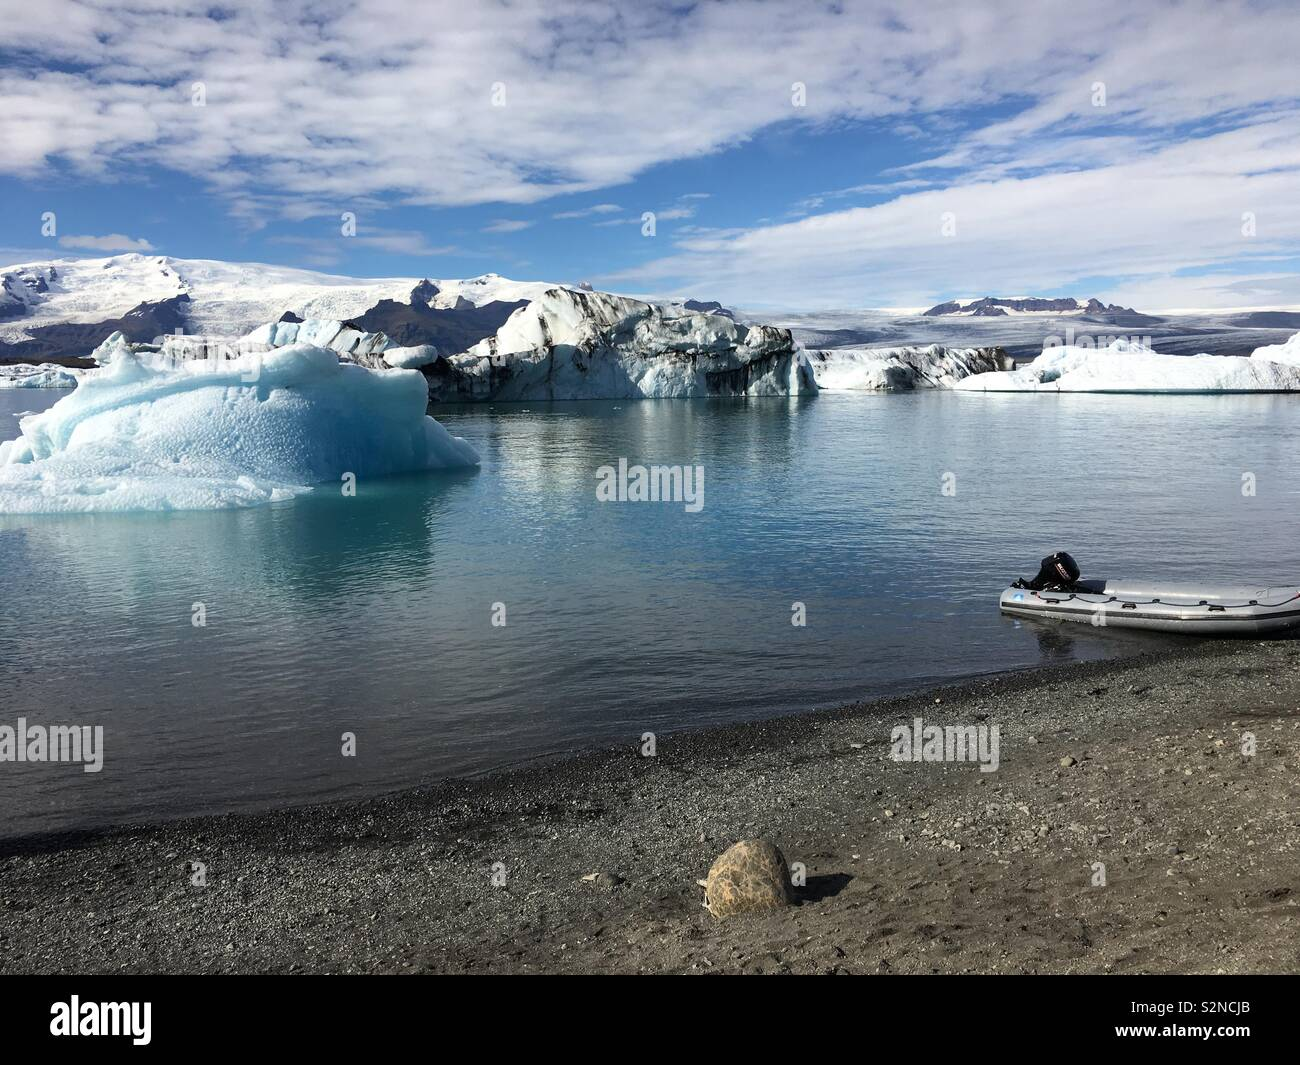 Melting glaciers - Stock Image